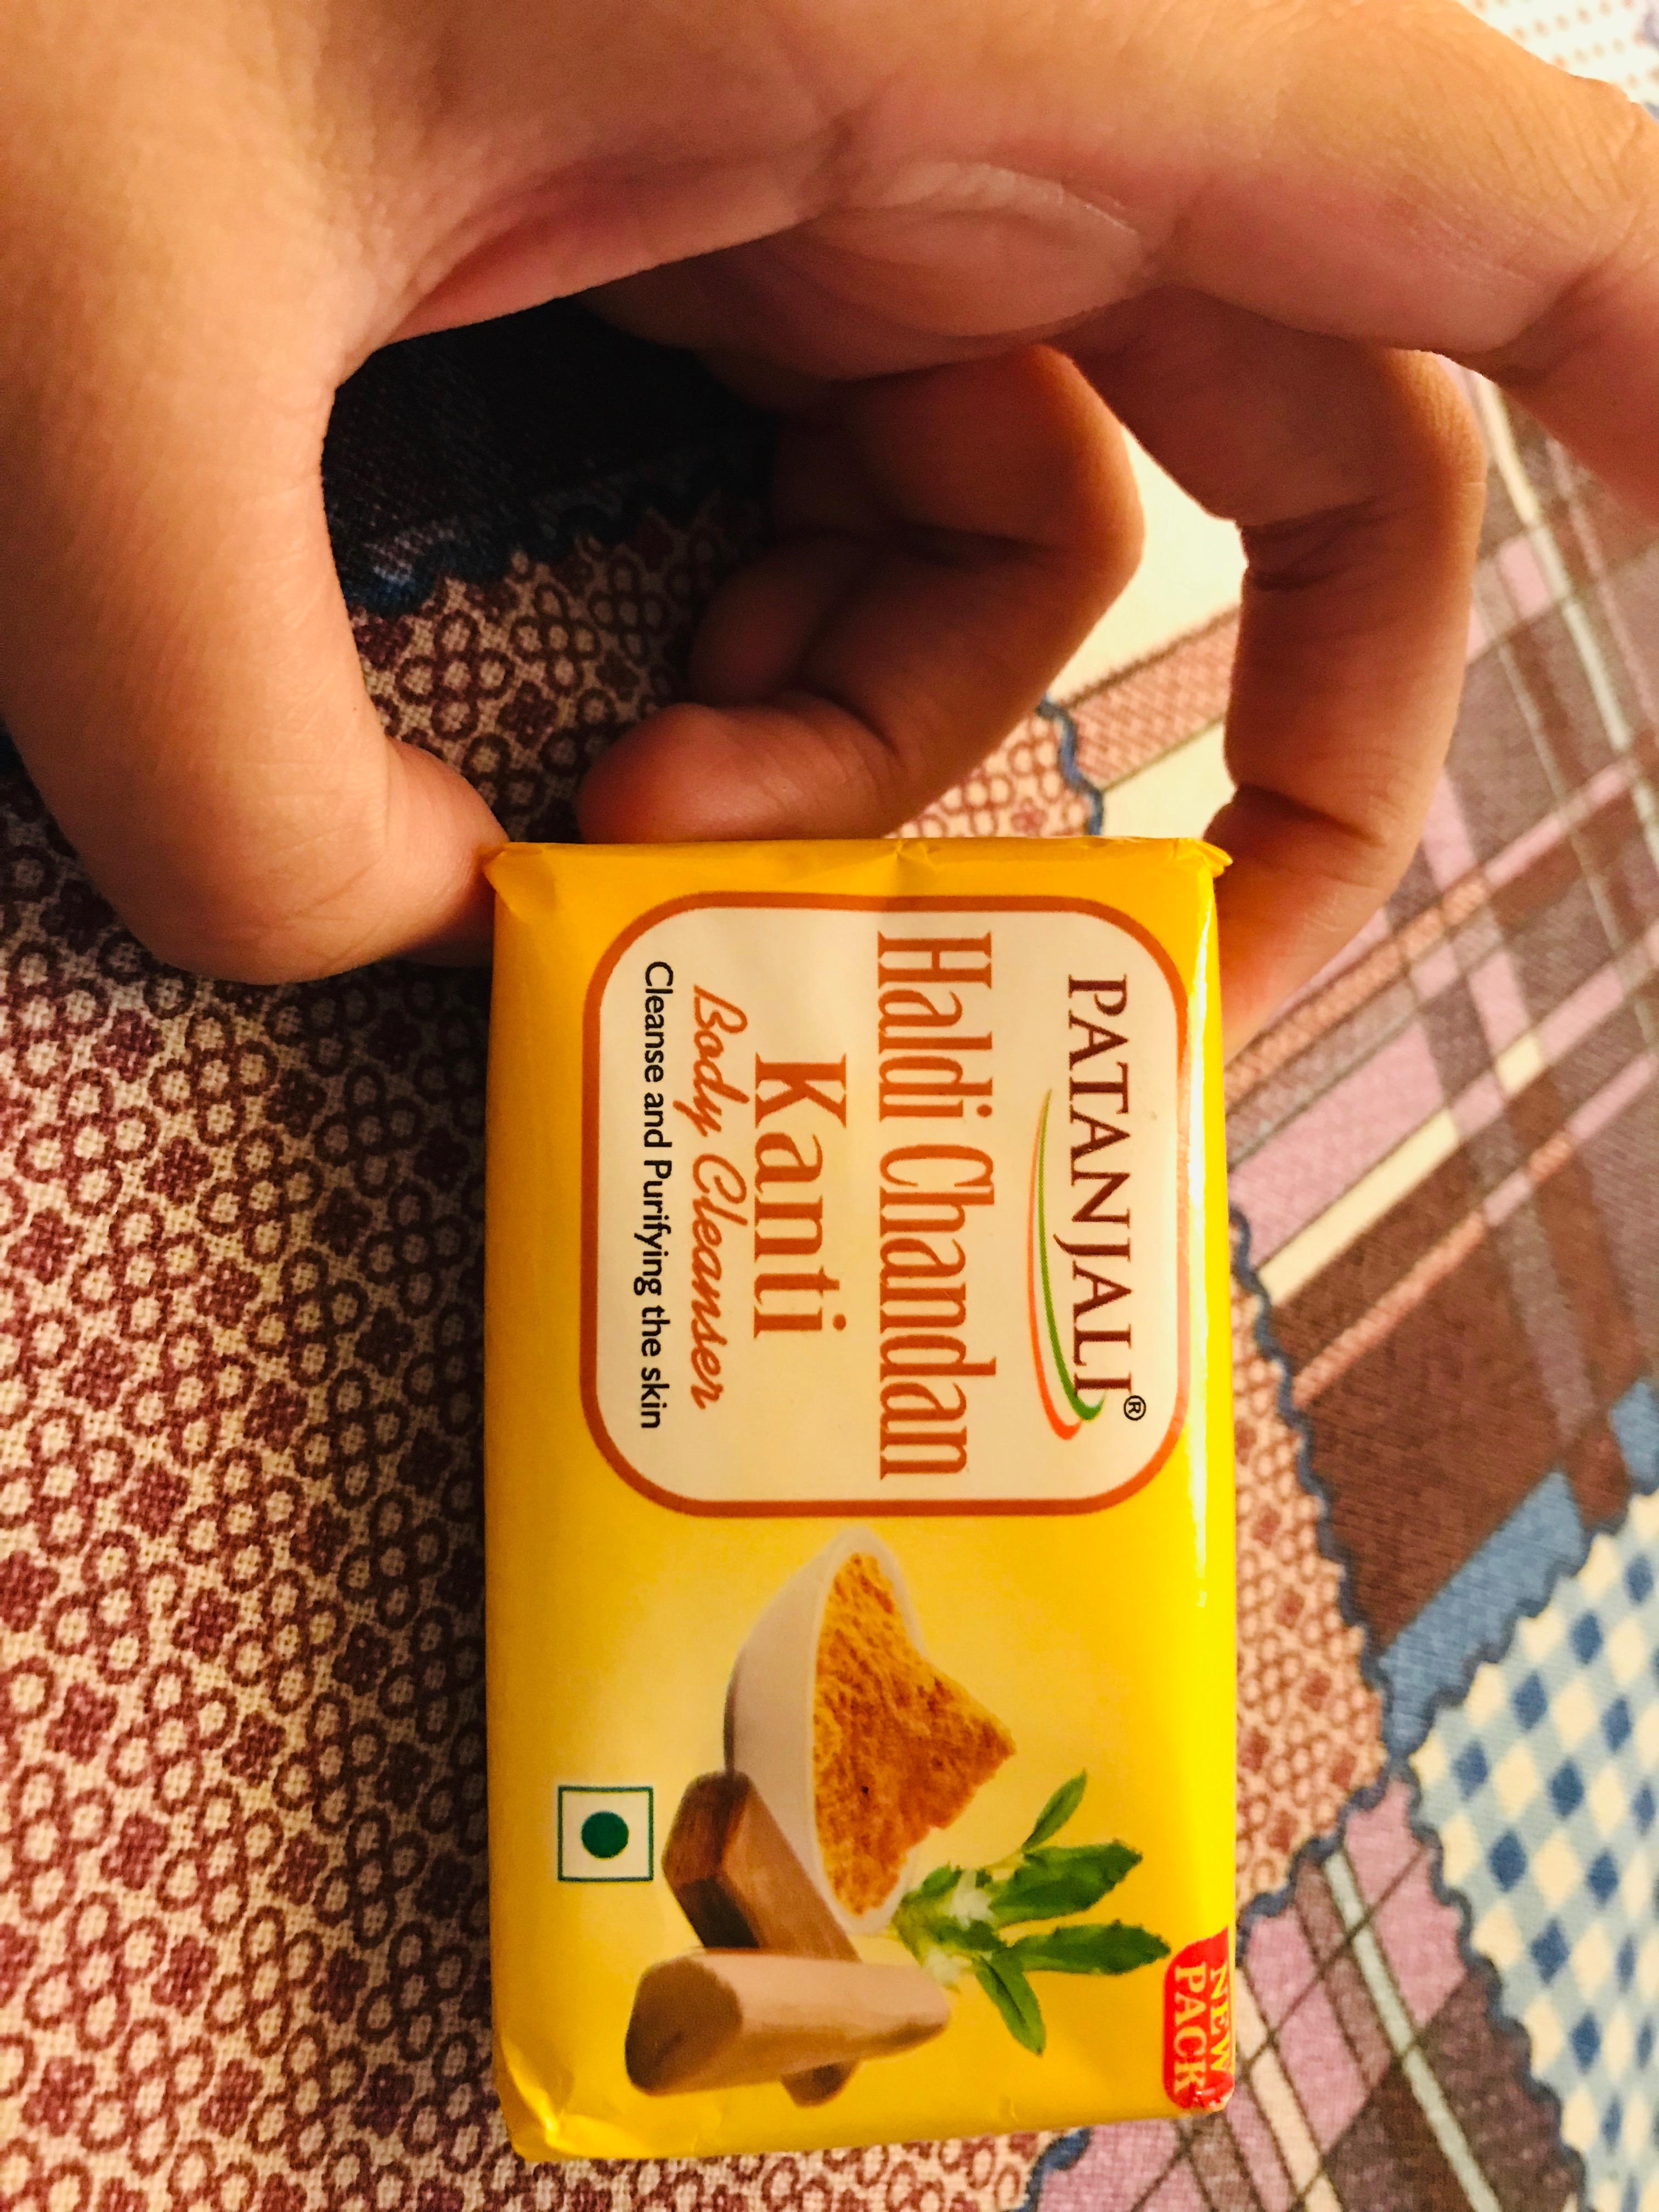 Patanjali Haldi Chandan Kanti Body Cleanser pic 4-Herbal budget friendly soap-By ruchi_sharma